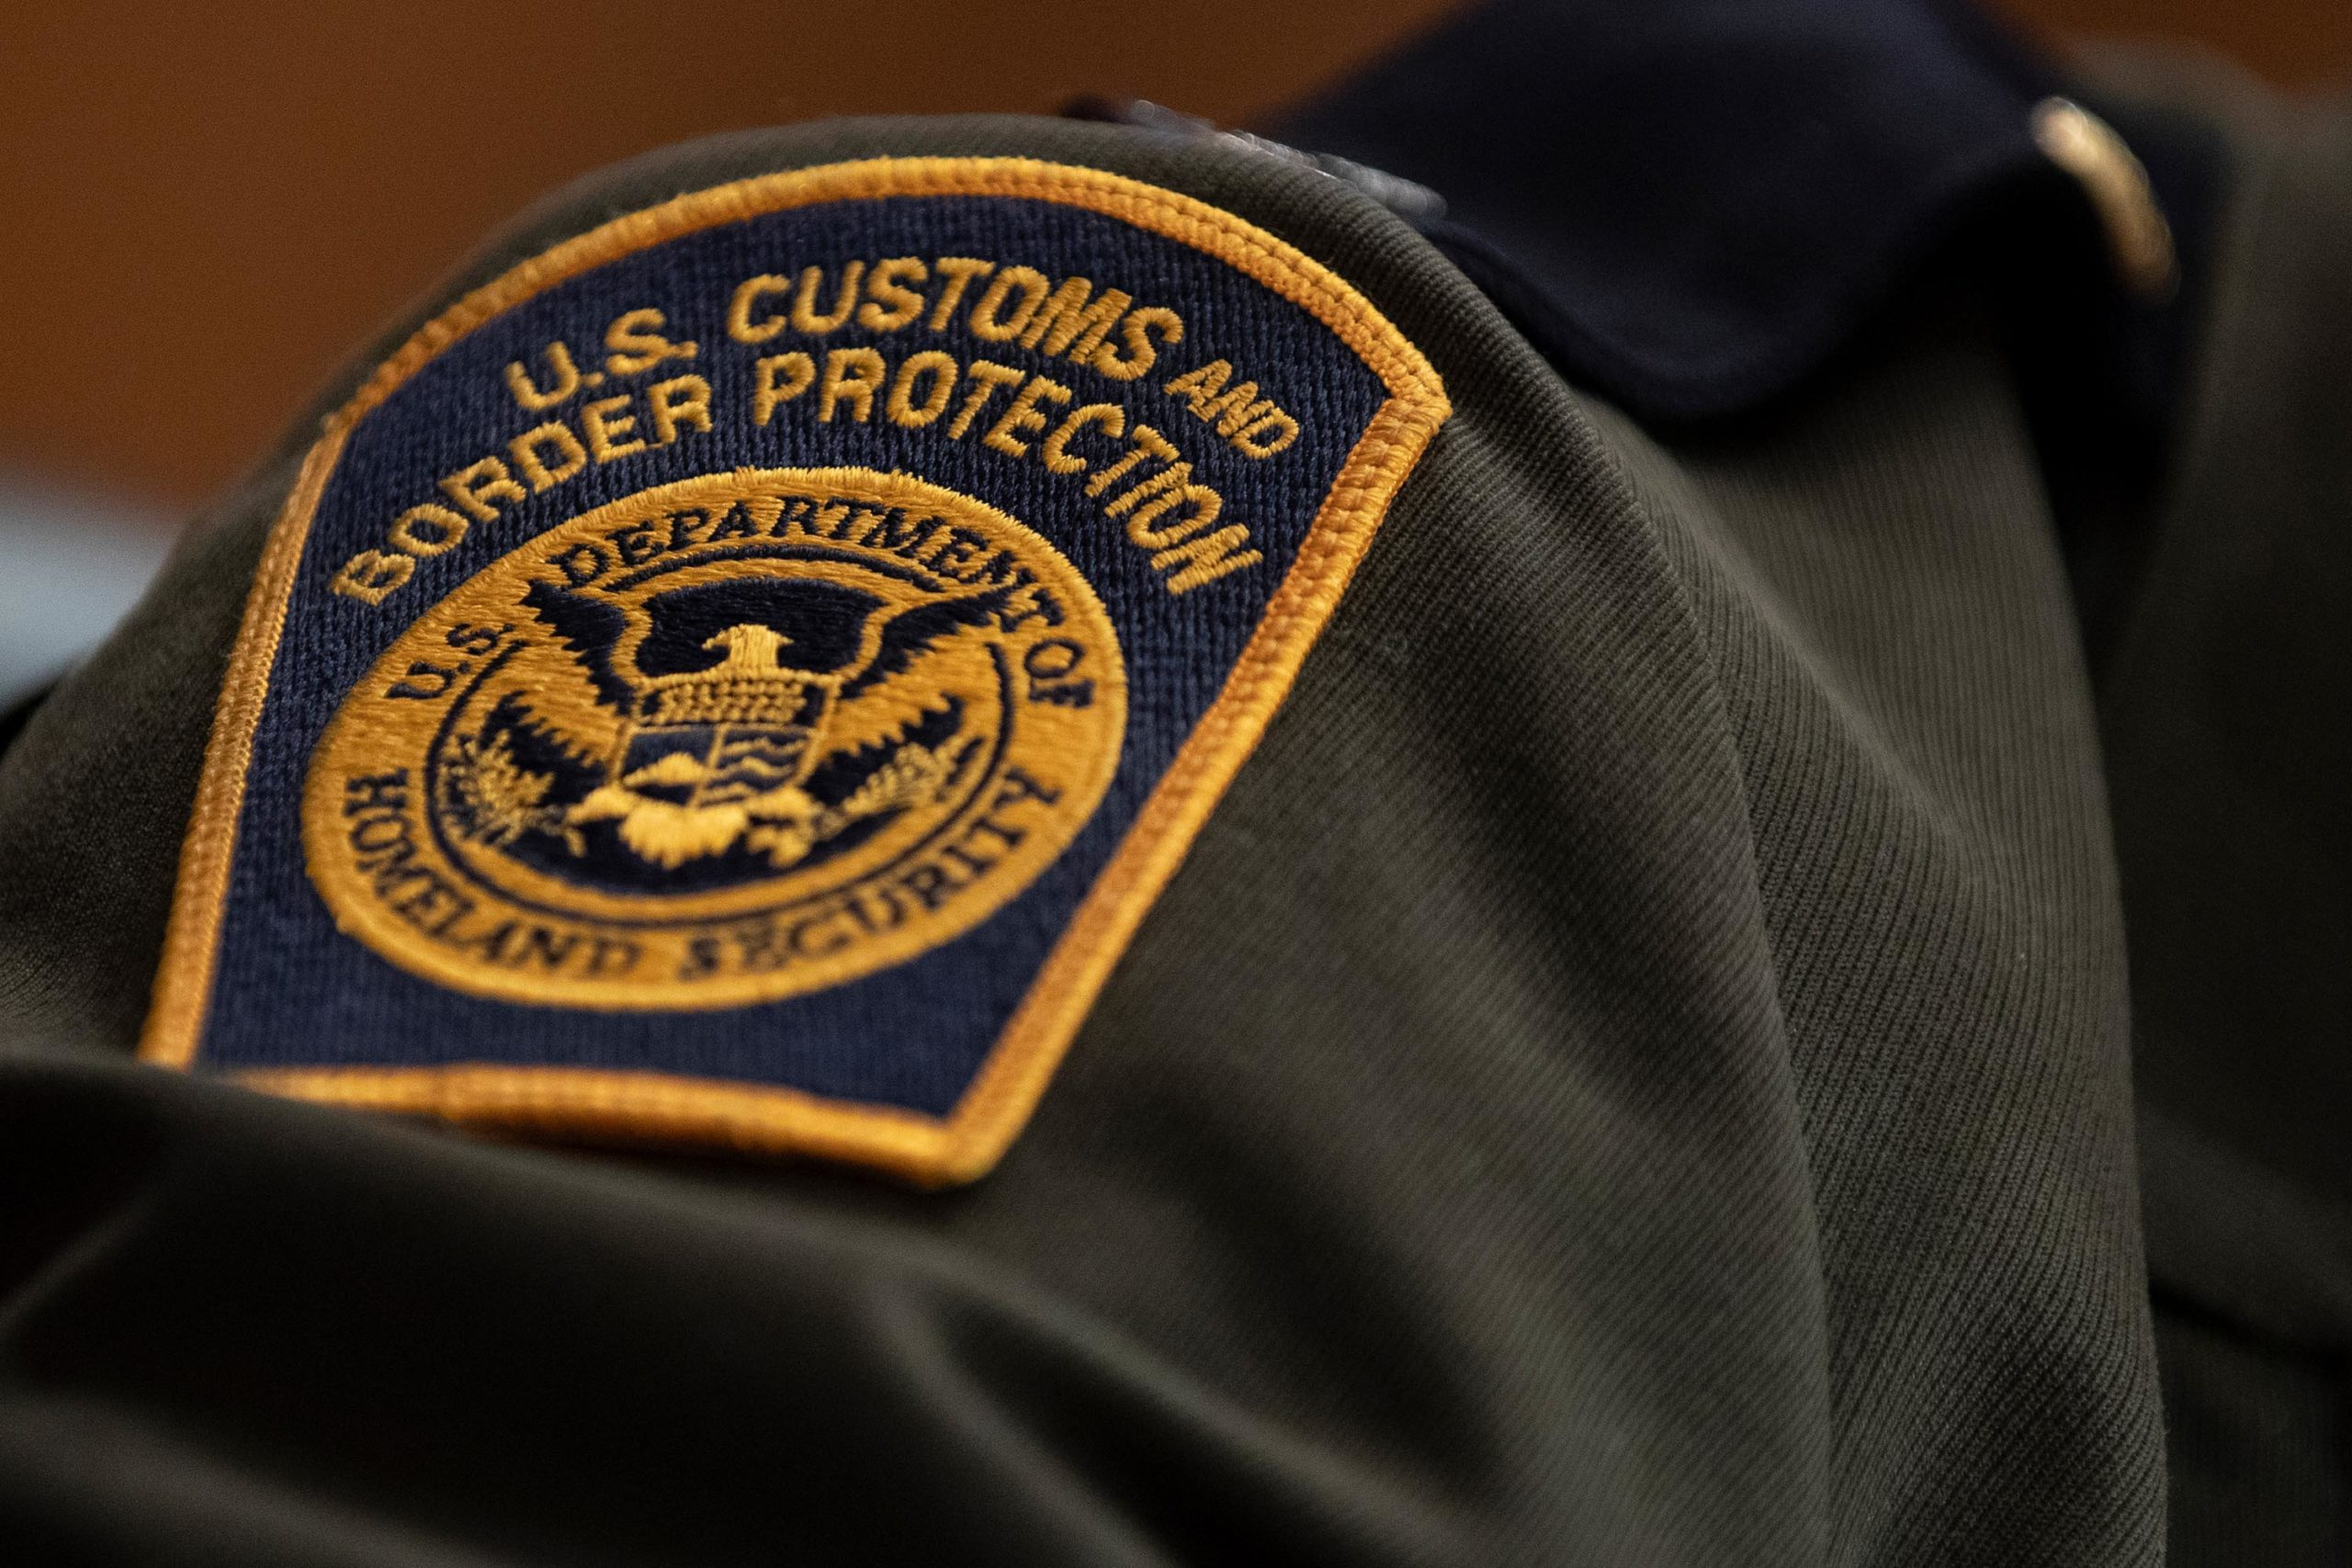 A U.S. Customs and Border Protection patch on the uniform of an agent.